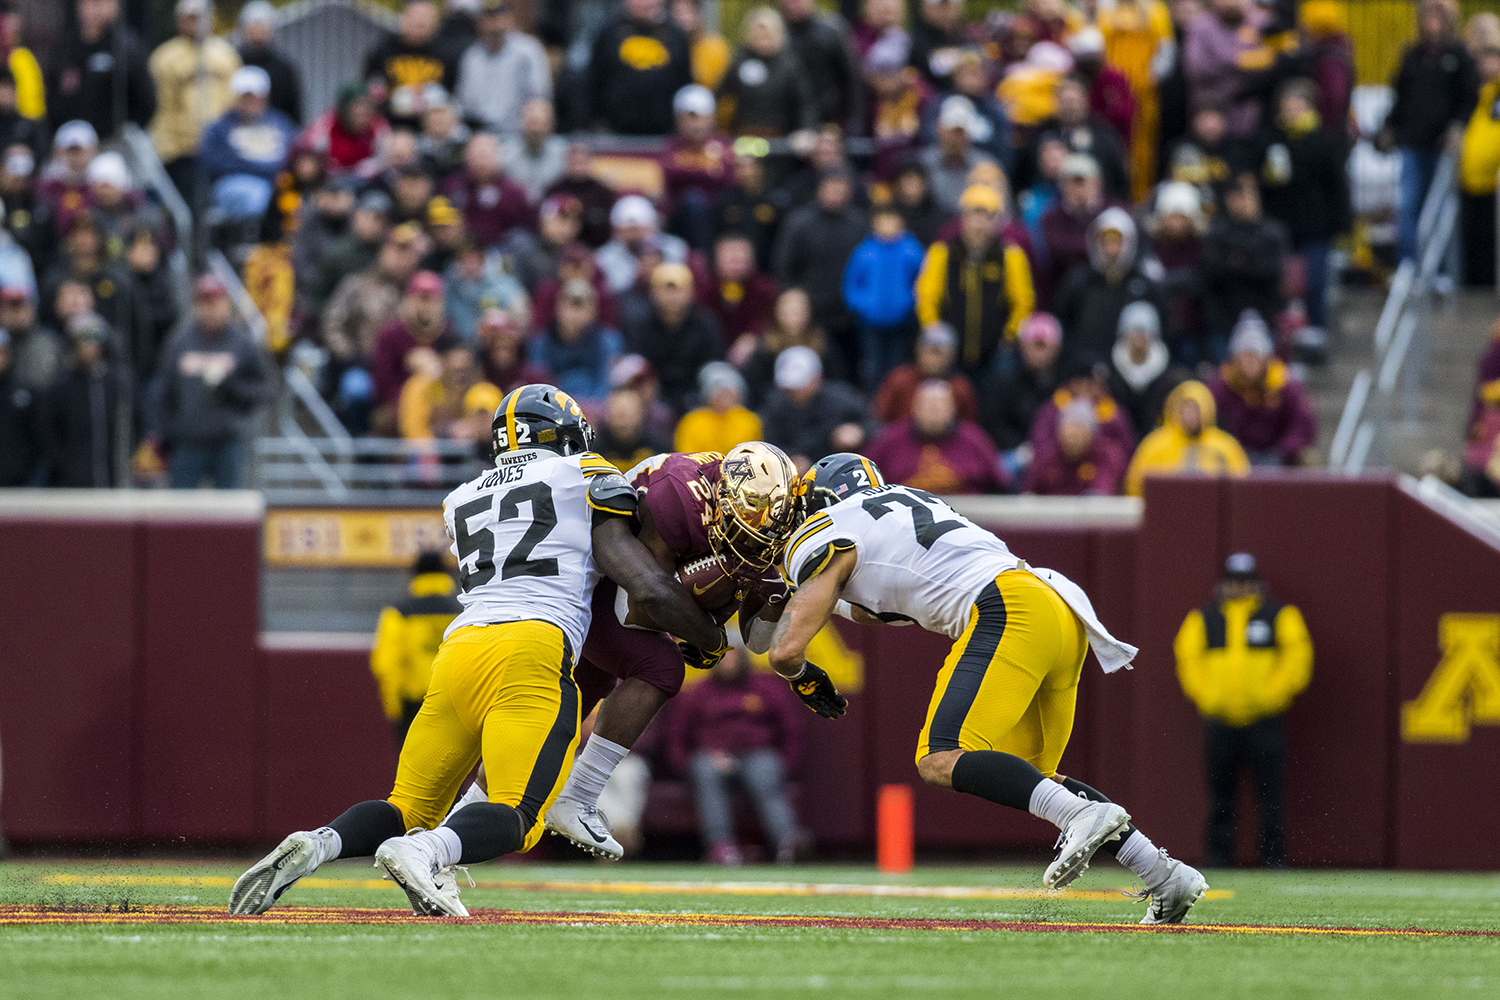 Iowa%27s+Amani+Jones+%2852%29+Amani+Hooker+%2827%29+tackle+Mohamad+Ibrahim+%2824%29+during+the+Iowa%2FMinnesota+football+game+at+TCF+Bank+Stadium+in+Minneapolis+on+Saturday%2C+October+6%2C+2018.+The+Hawkeyes+defeated+the+Golden+Gophers%2C+48-31.+